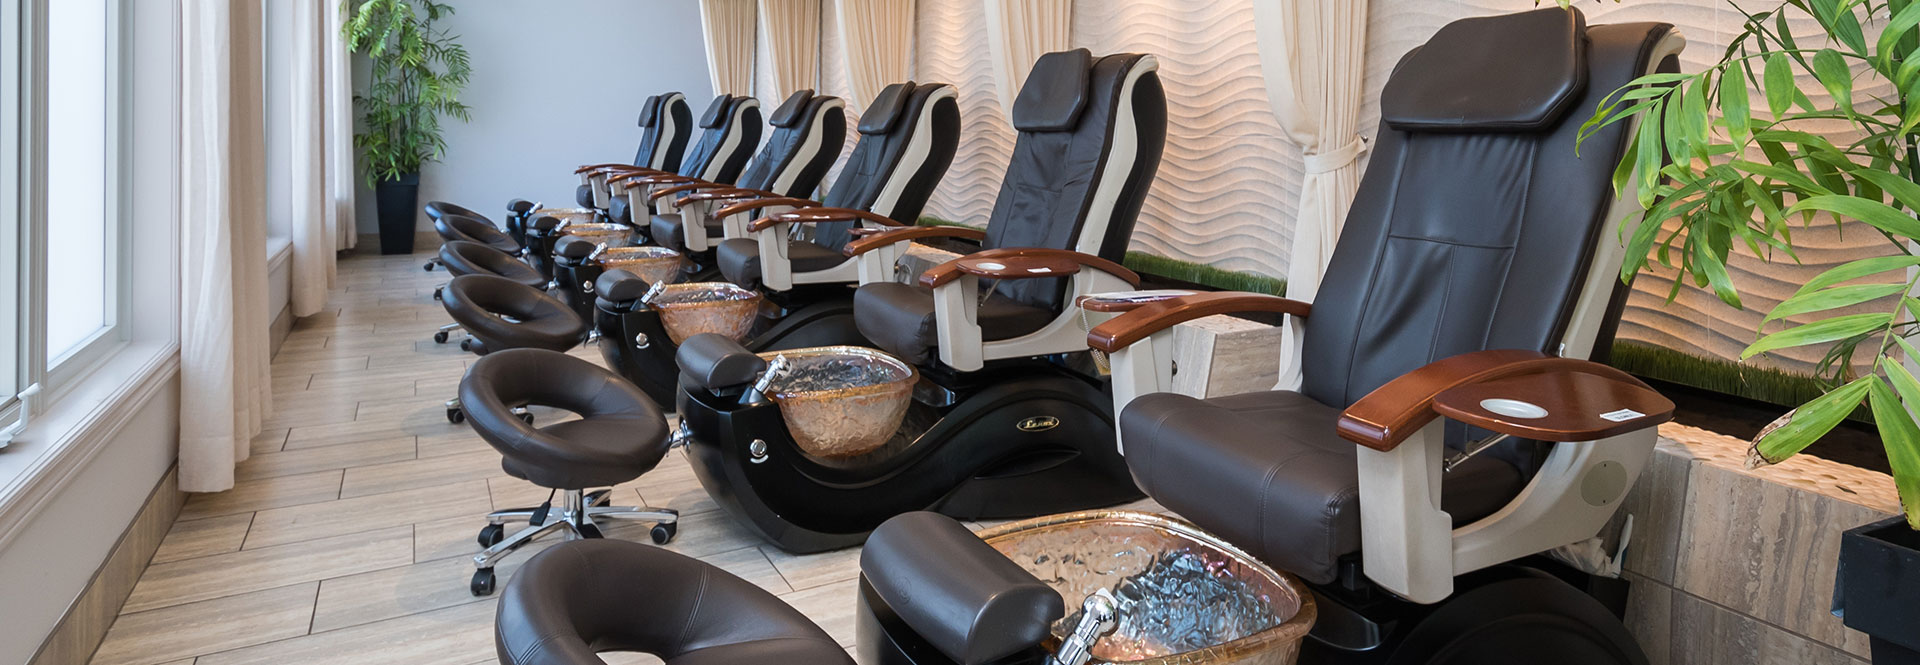 Fayez Spa Pedicure Area